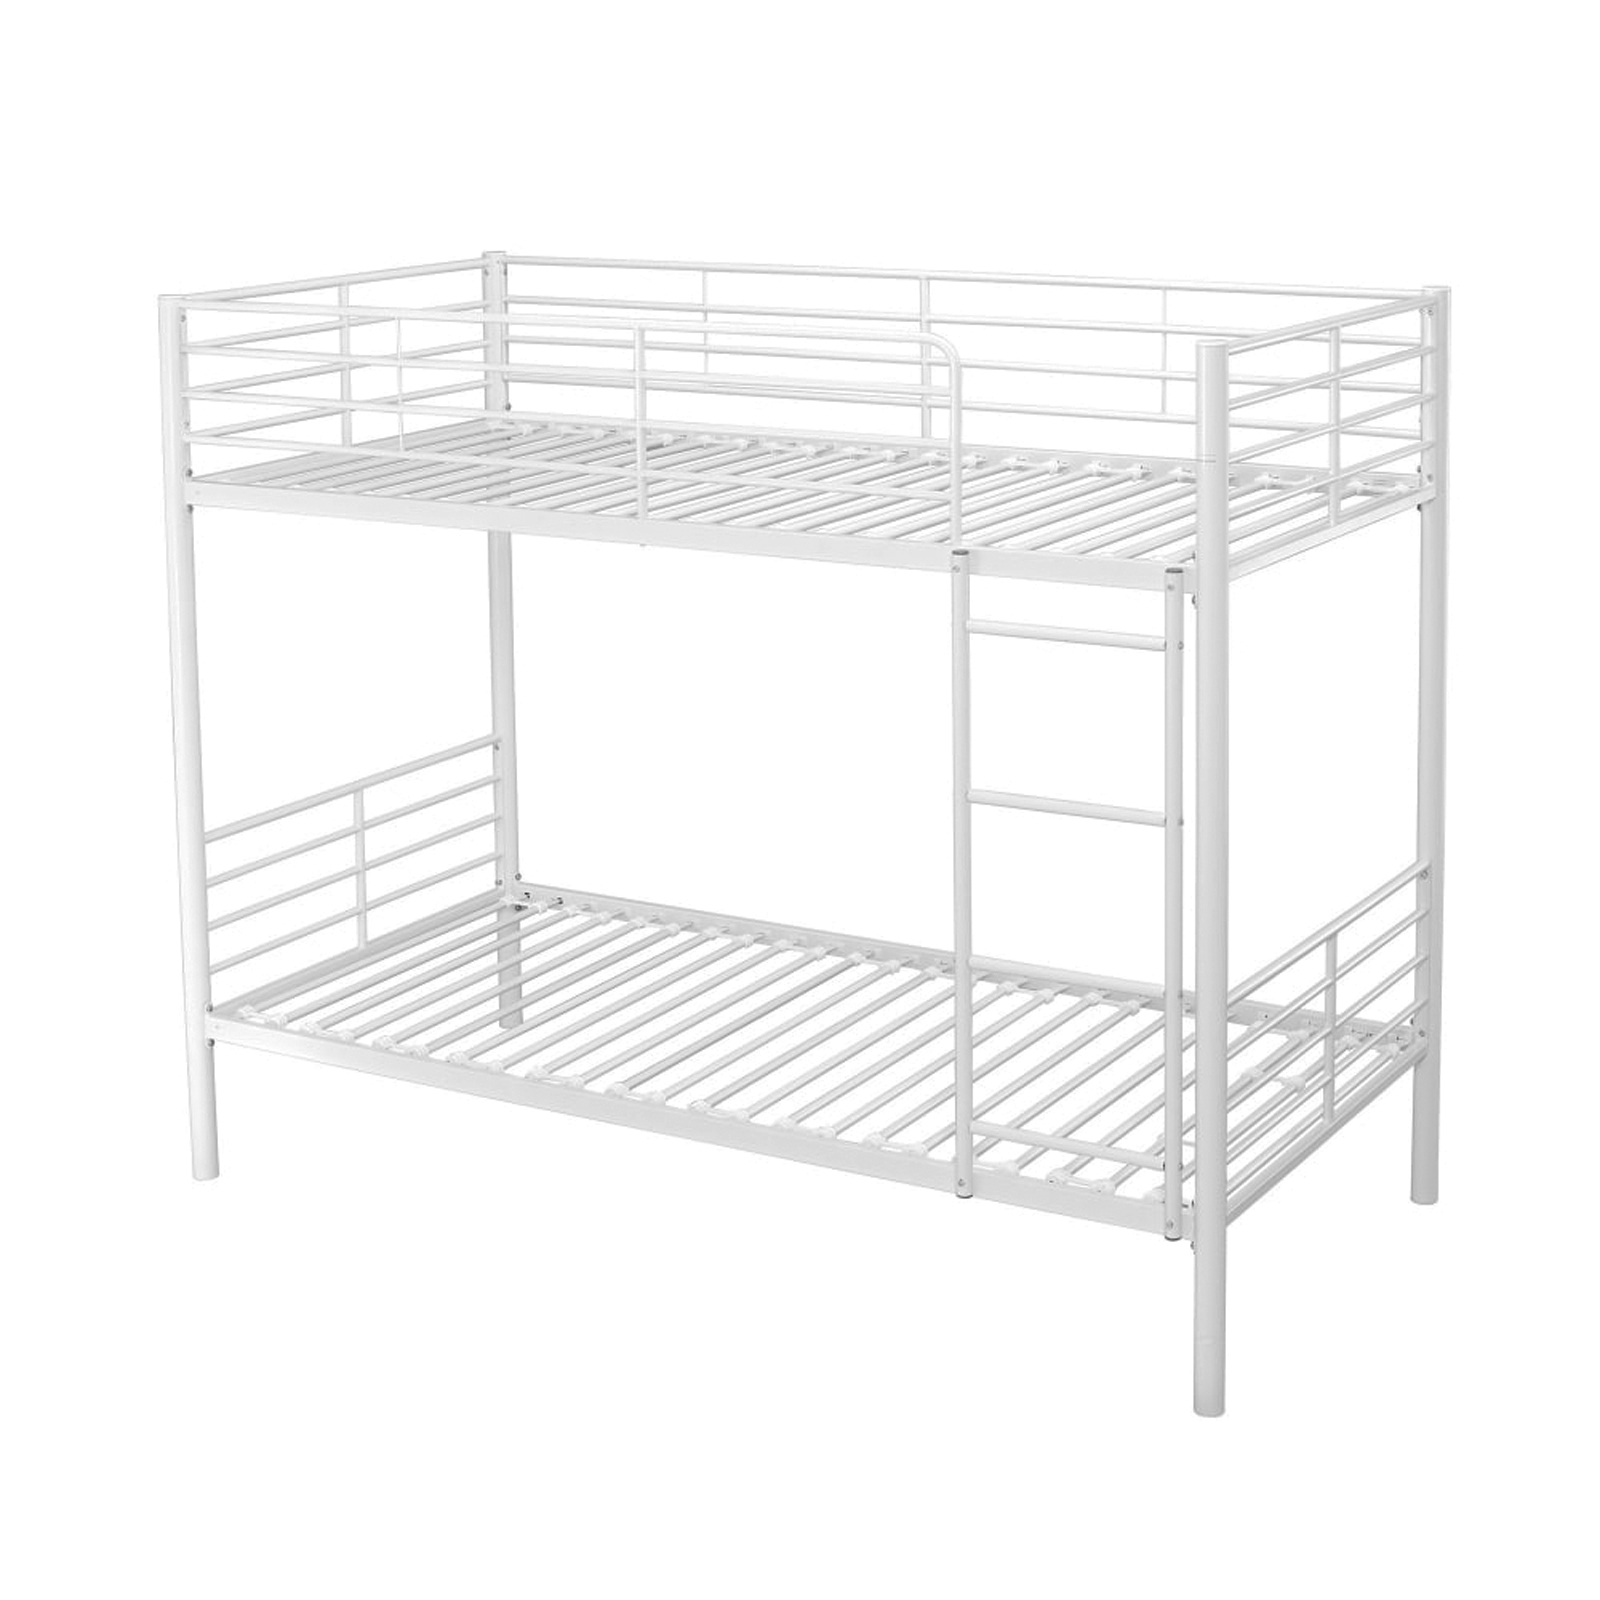 White Or Silver Metal 3 Single Bunk Bed